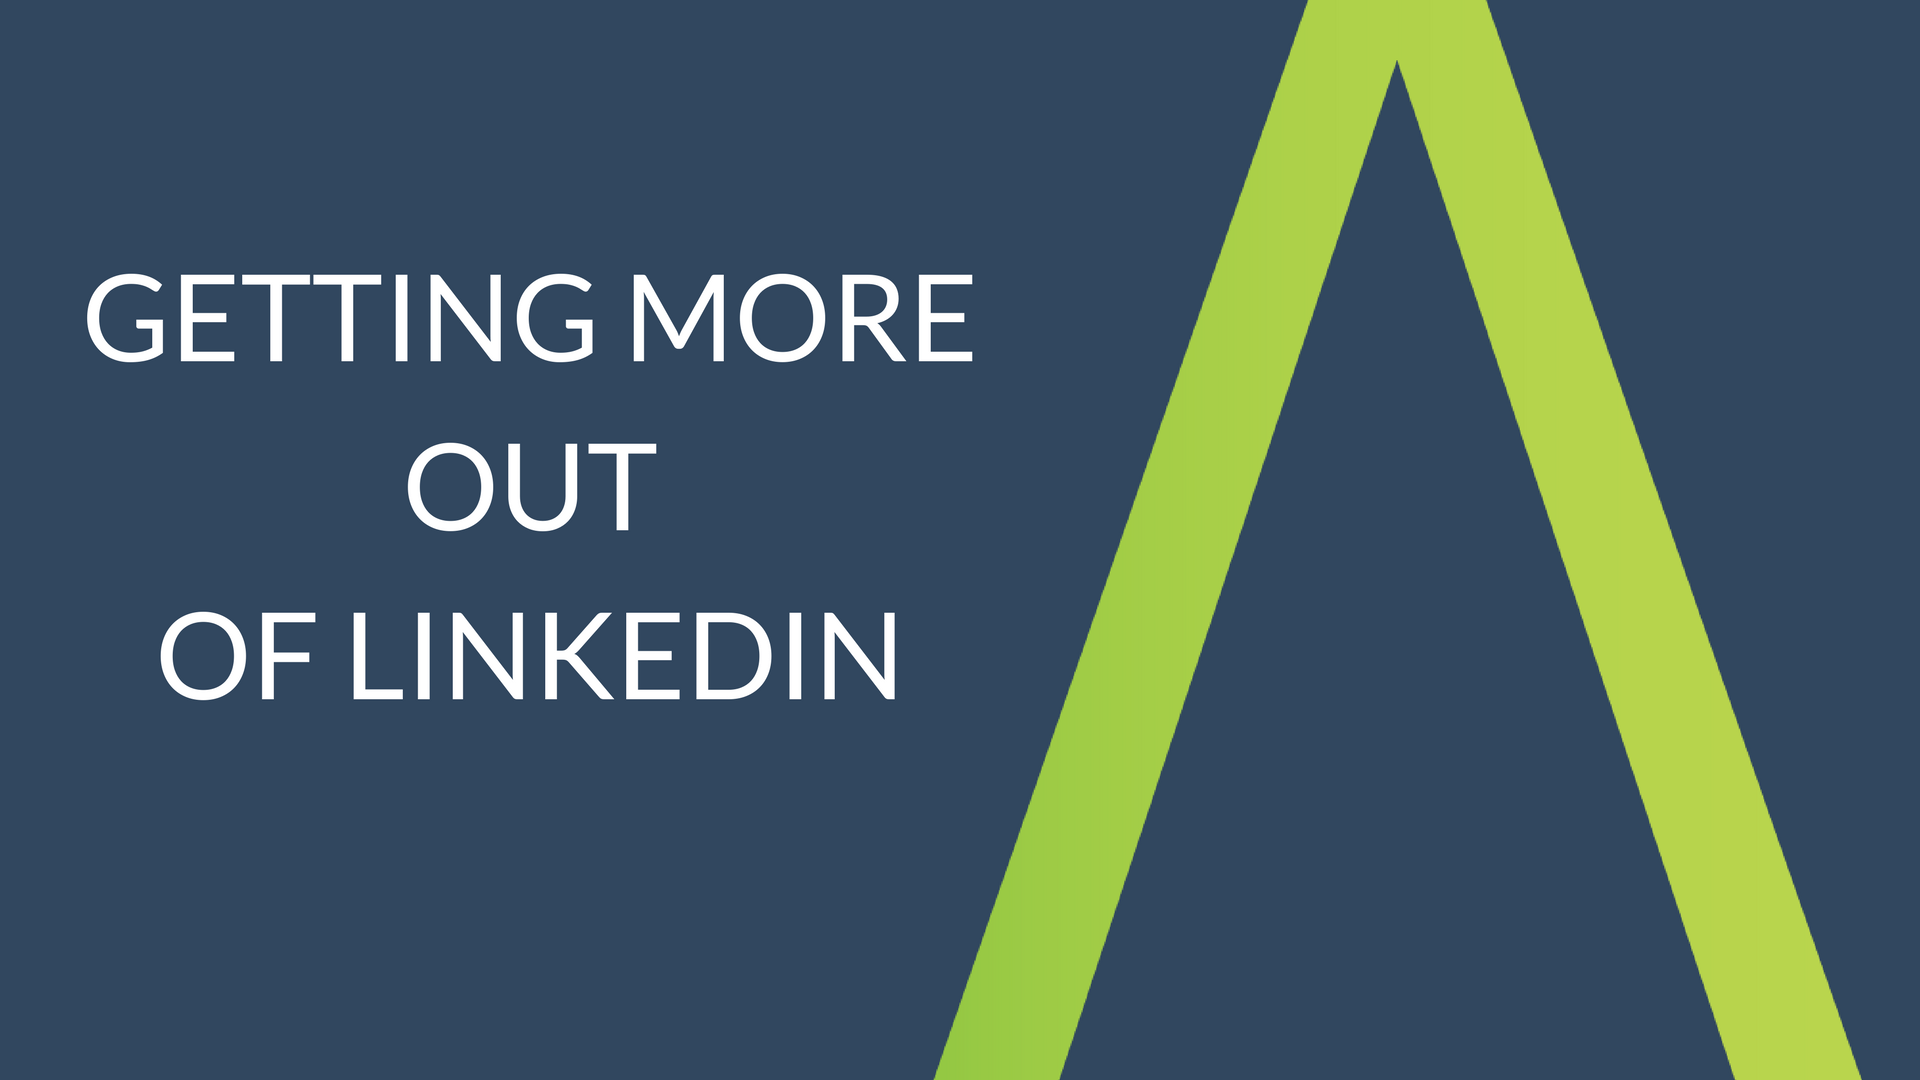 Getting more out of Linkedin